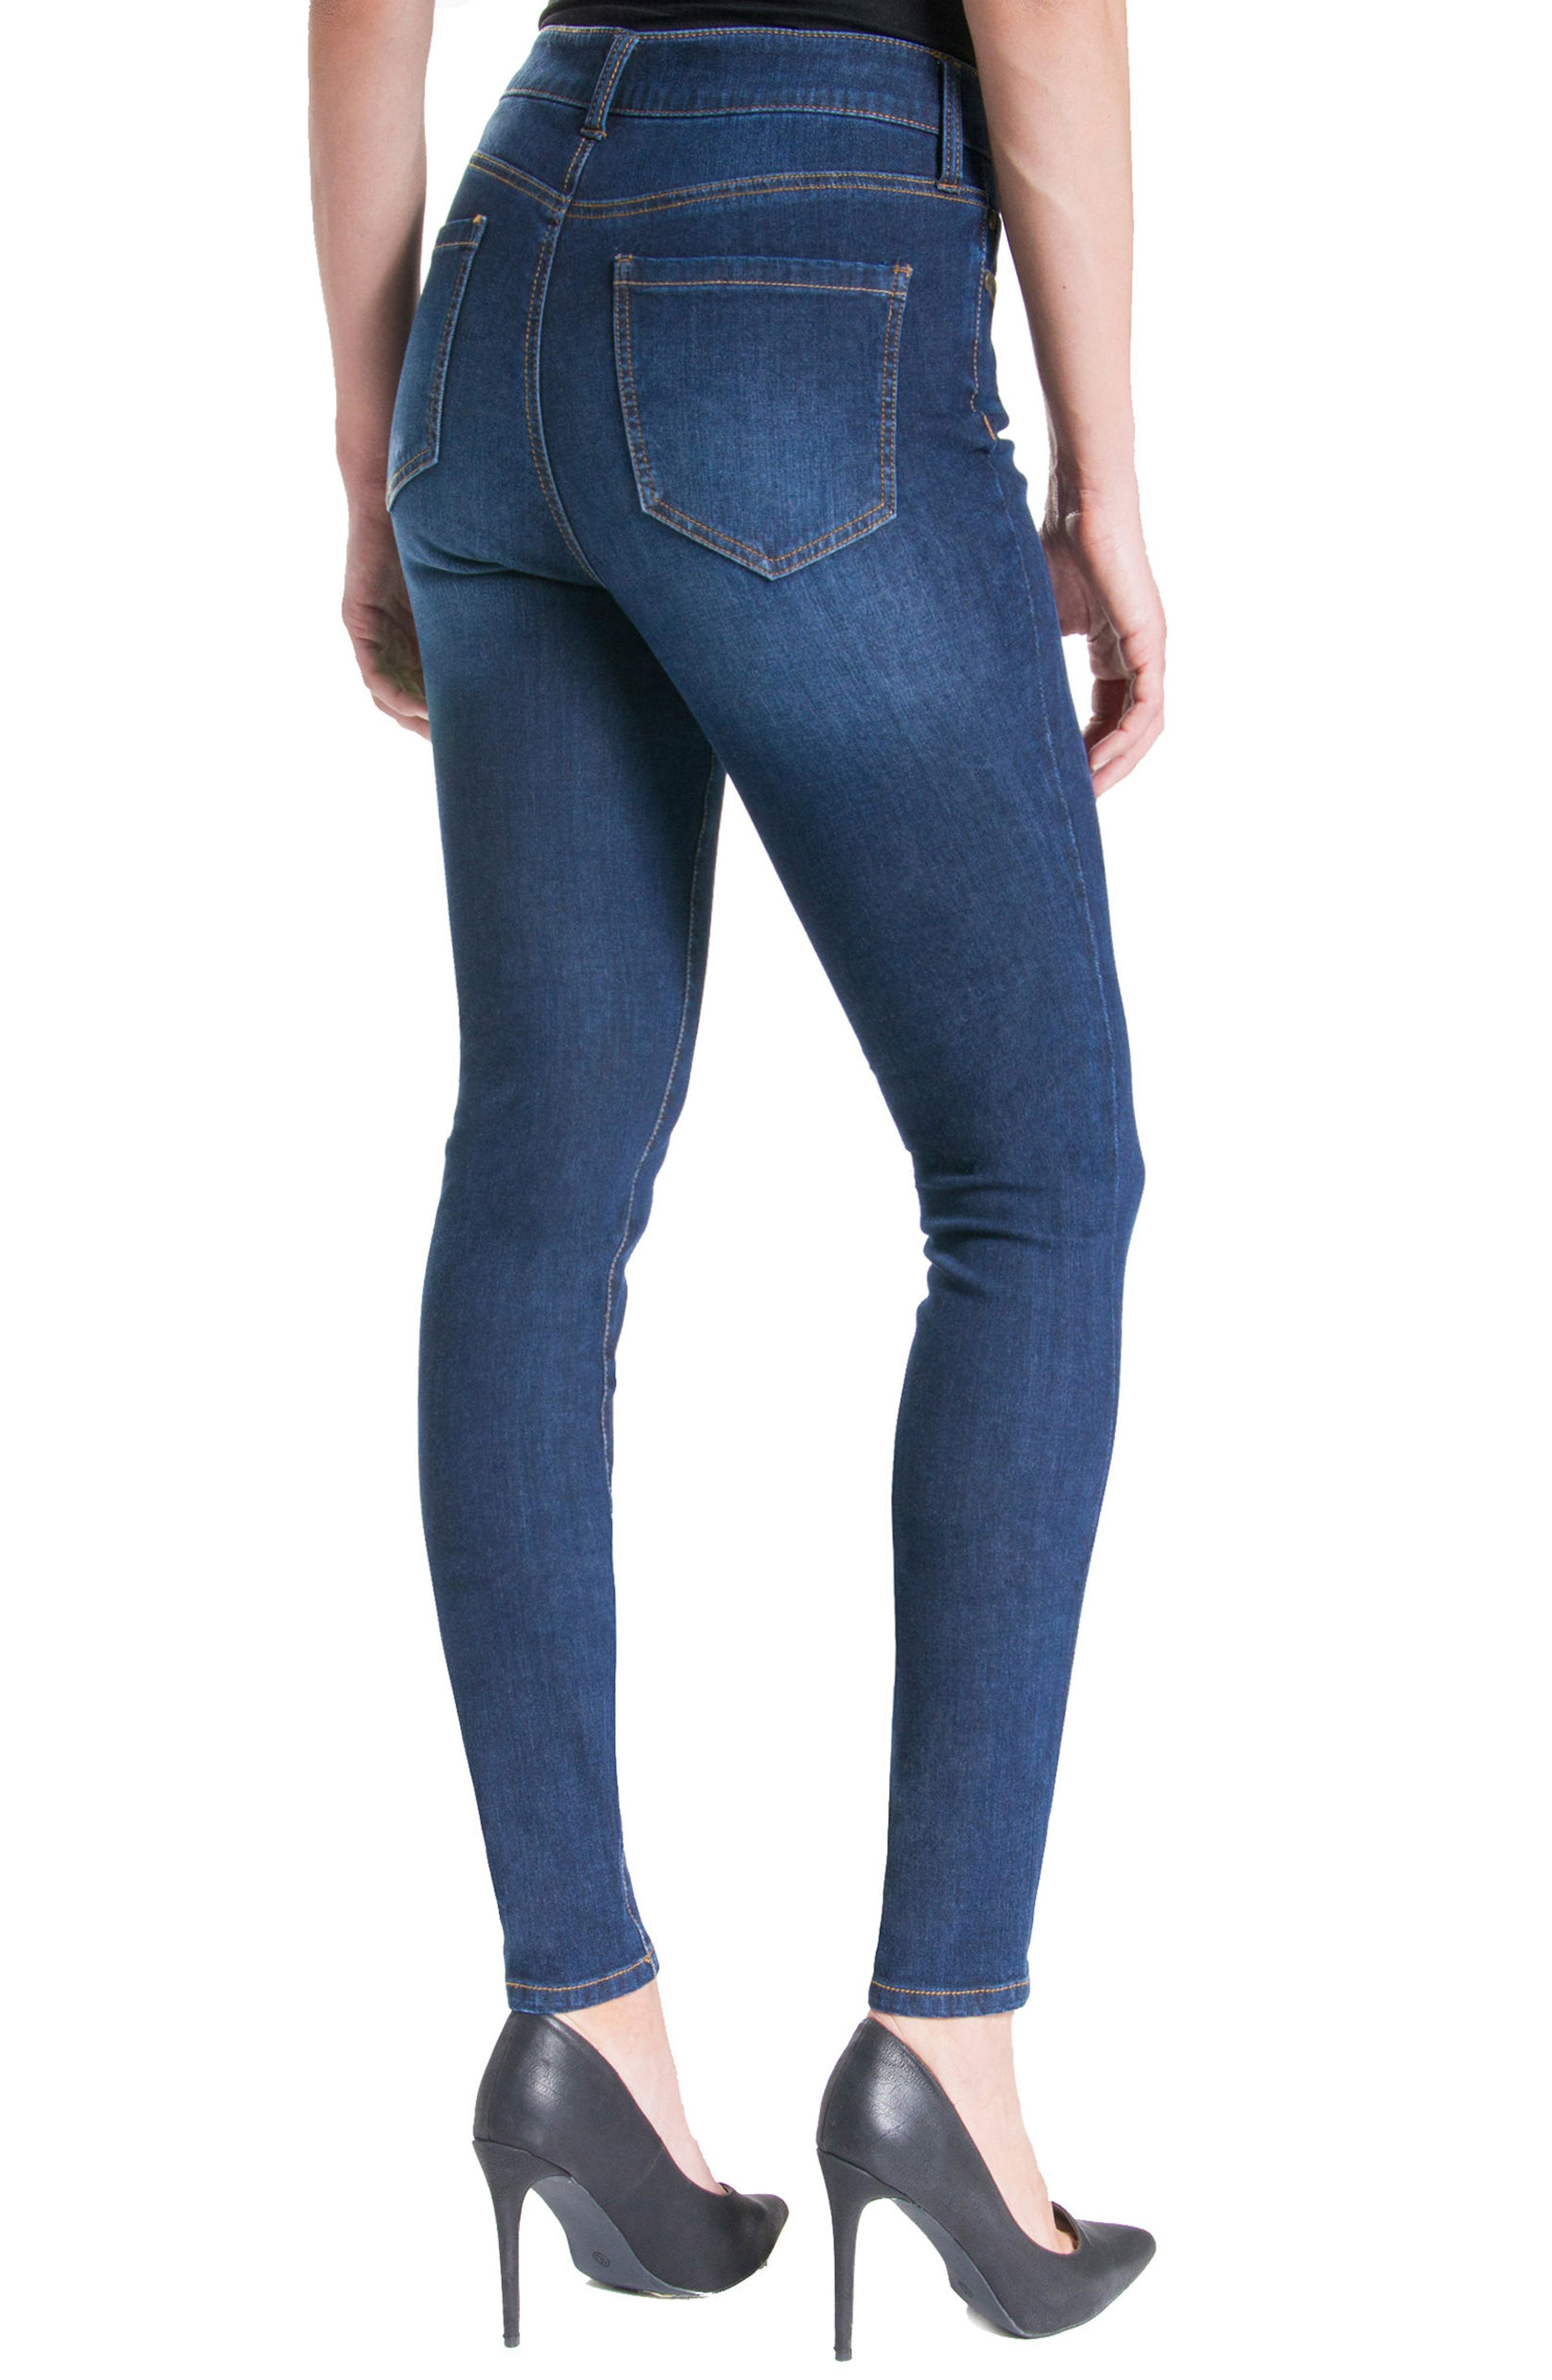 Abby Stretch Skinny Jeans,                             Alternate thumbnail 4, color,                             401